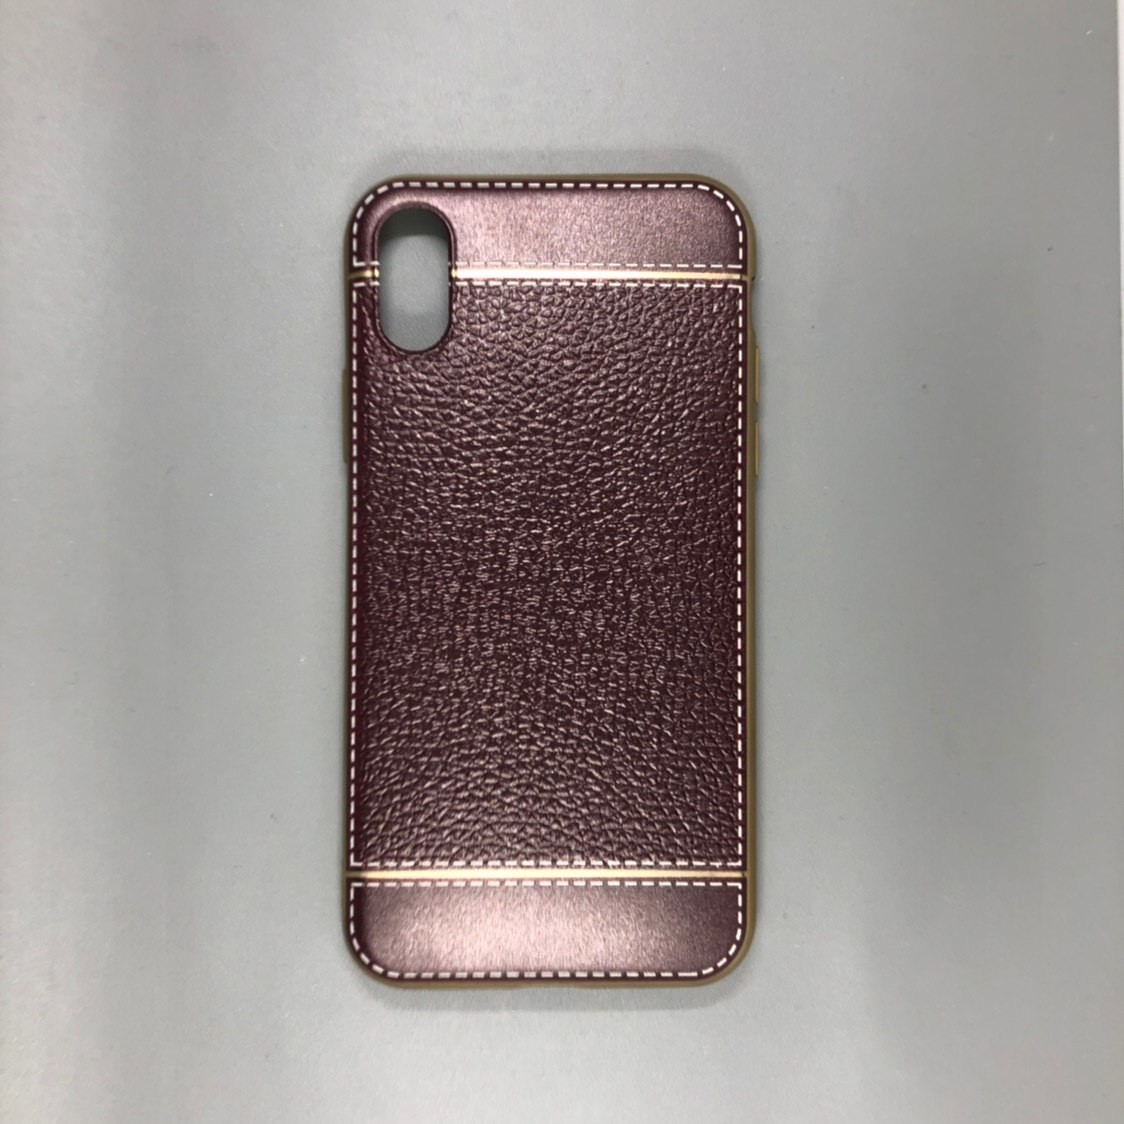 iPhone X Plastic Gold/Violet